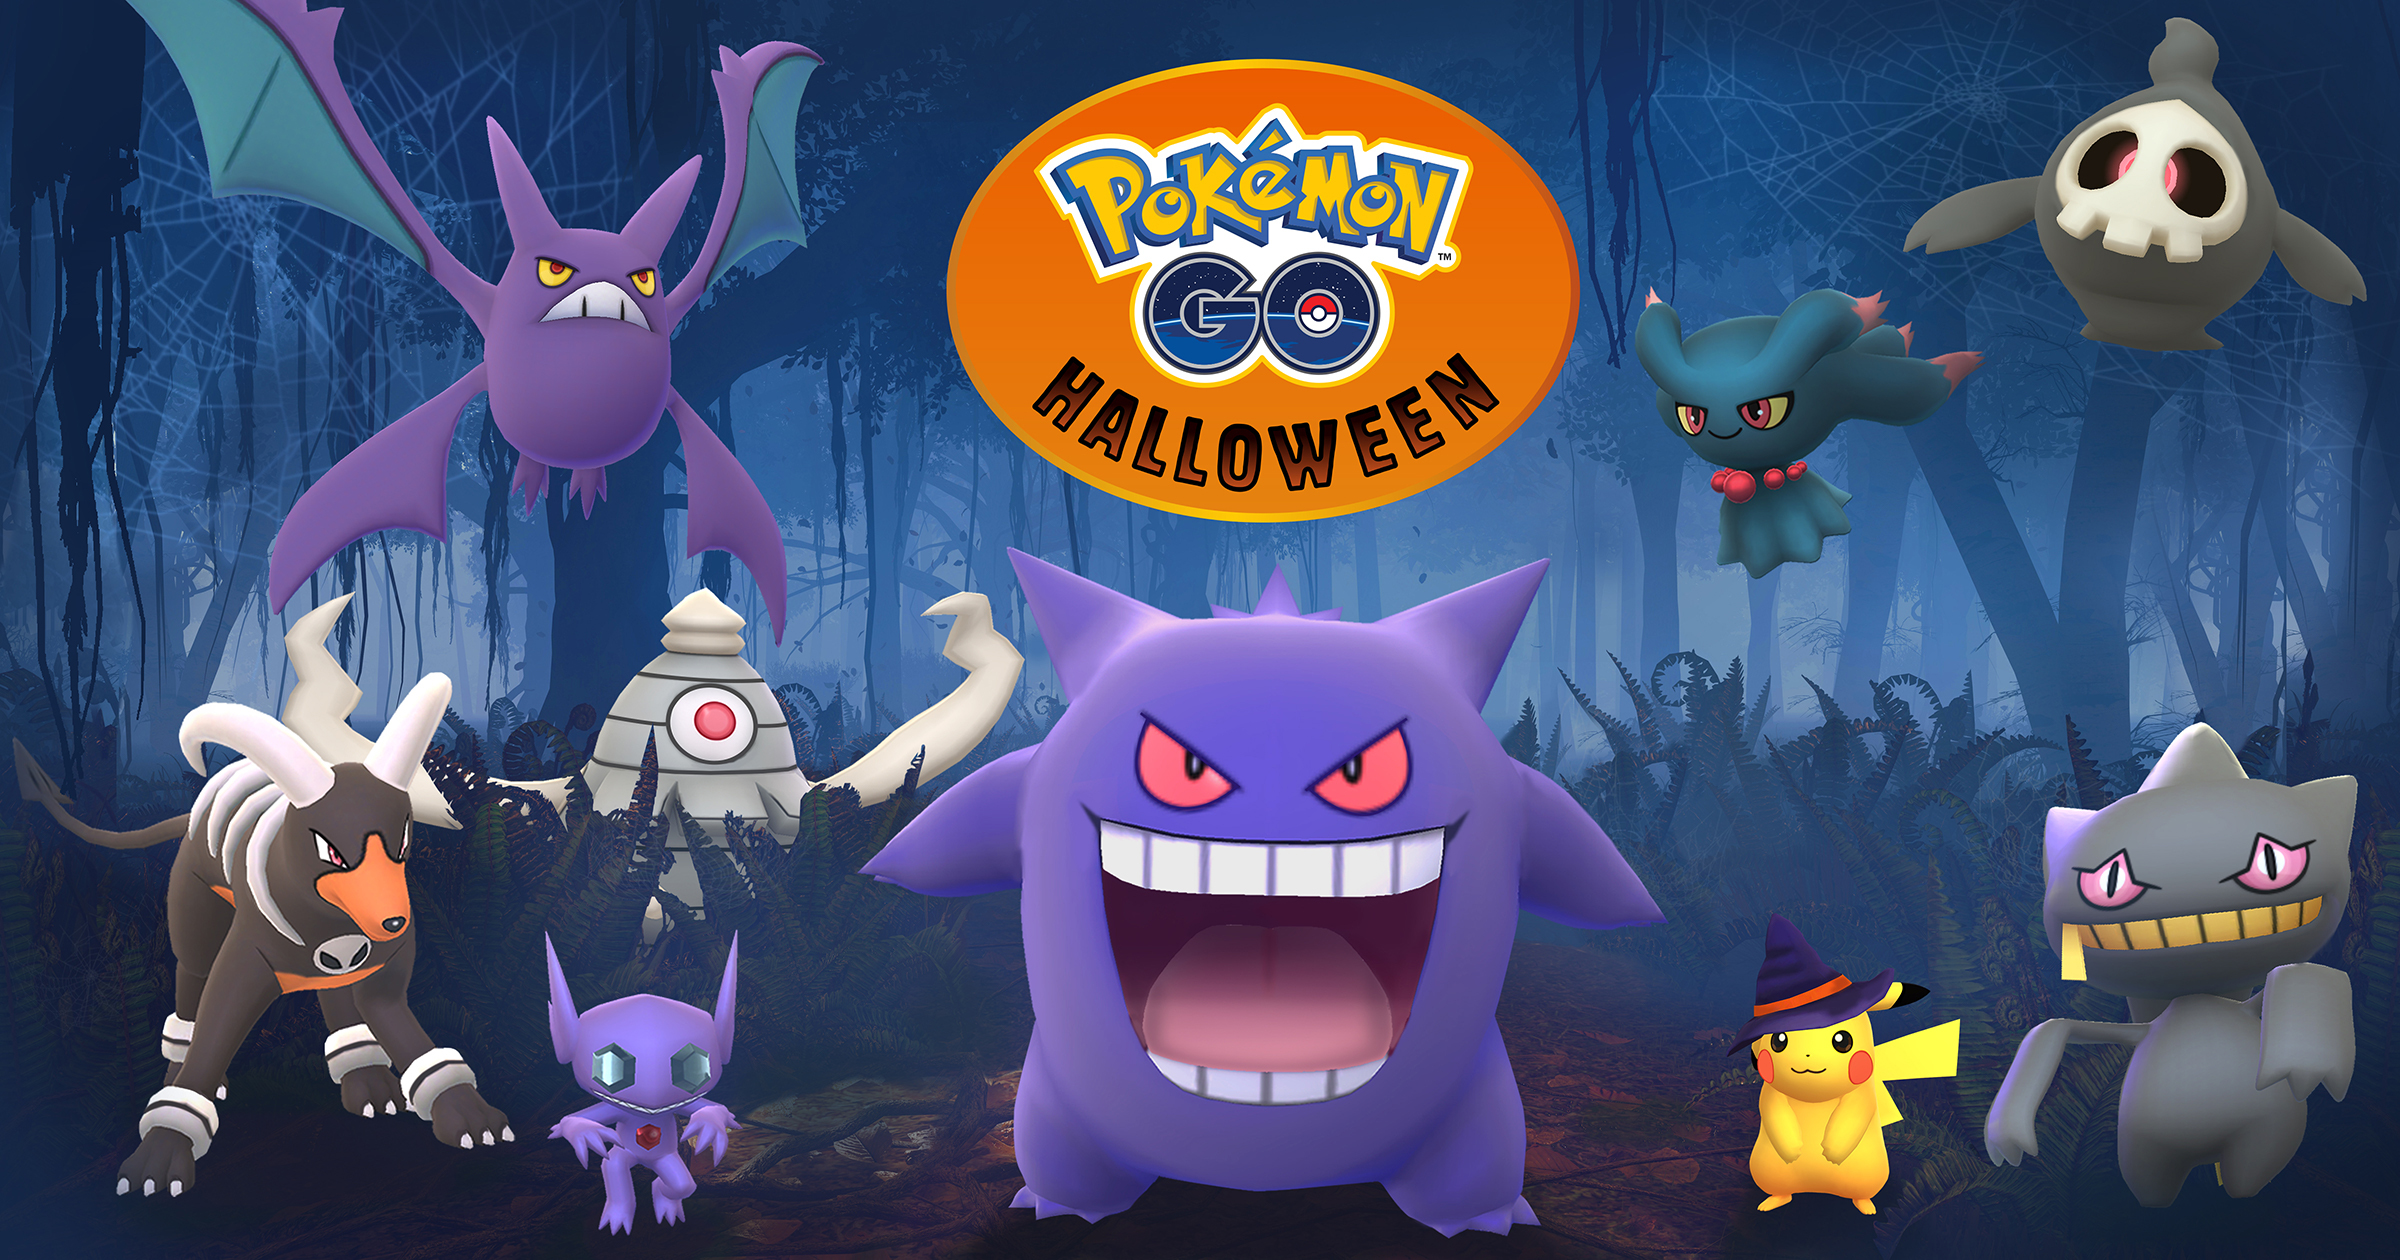 Photo of Pokemon Go Halloween Event Starts on October 20